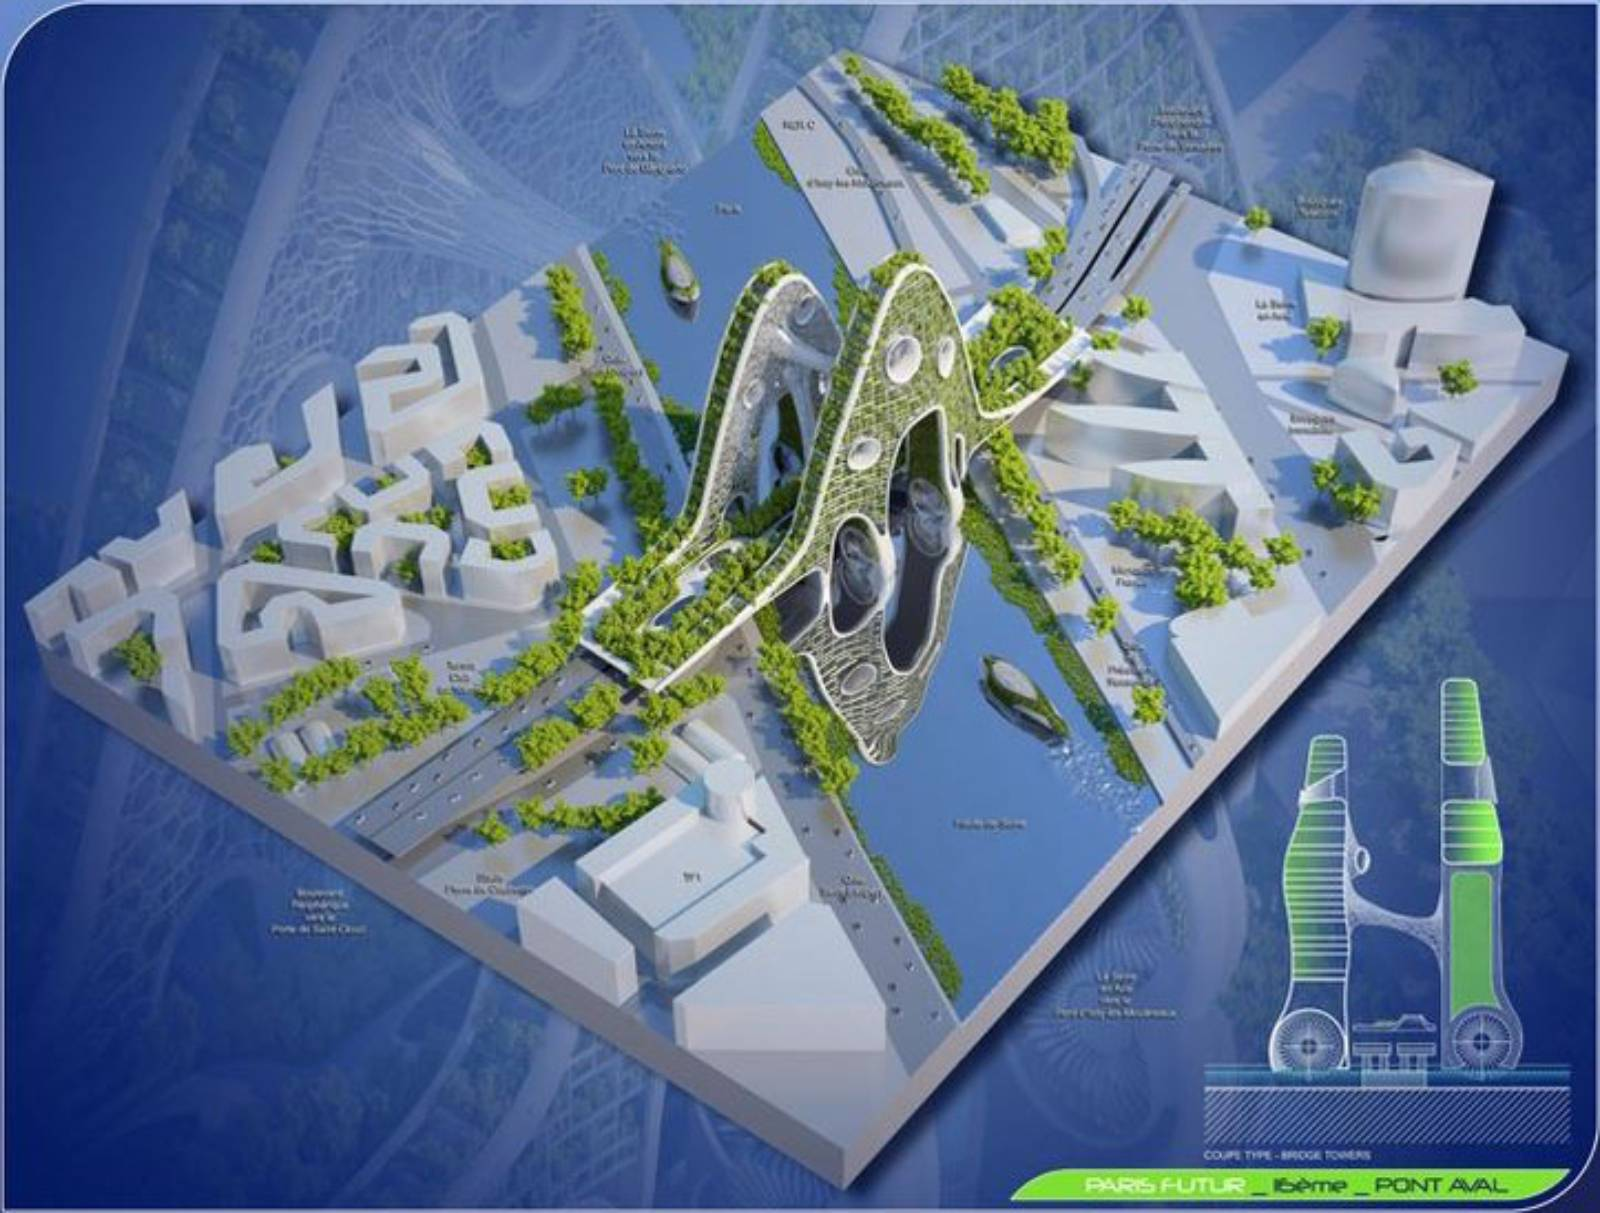 Paris smart city 2050 by vincent callebaut 18 for Architecture 2050